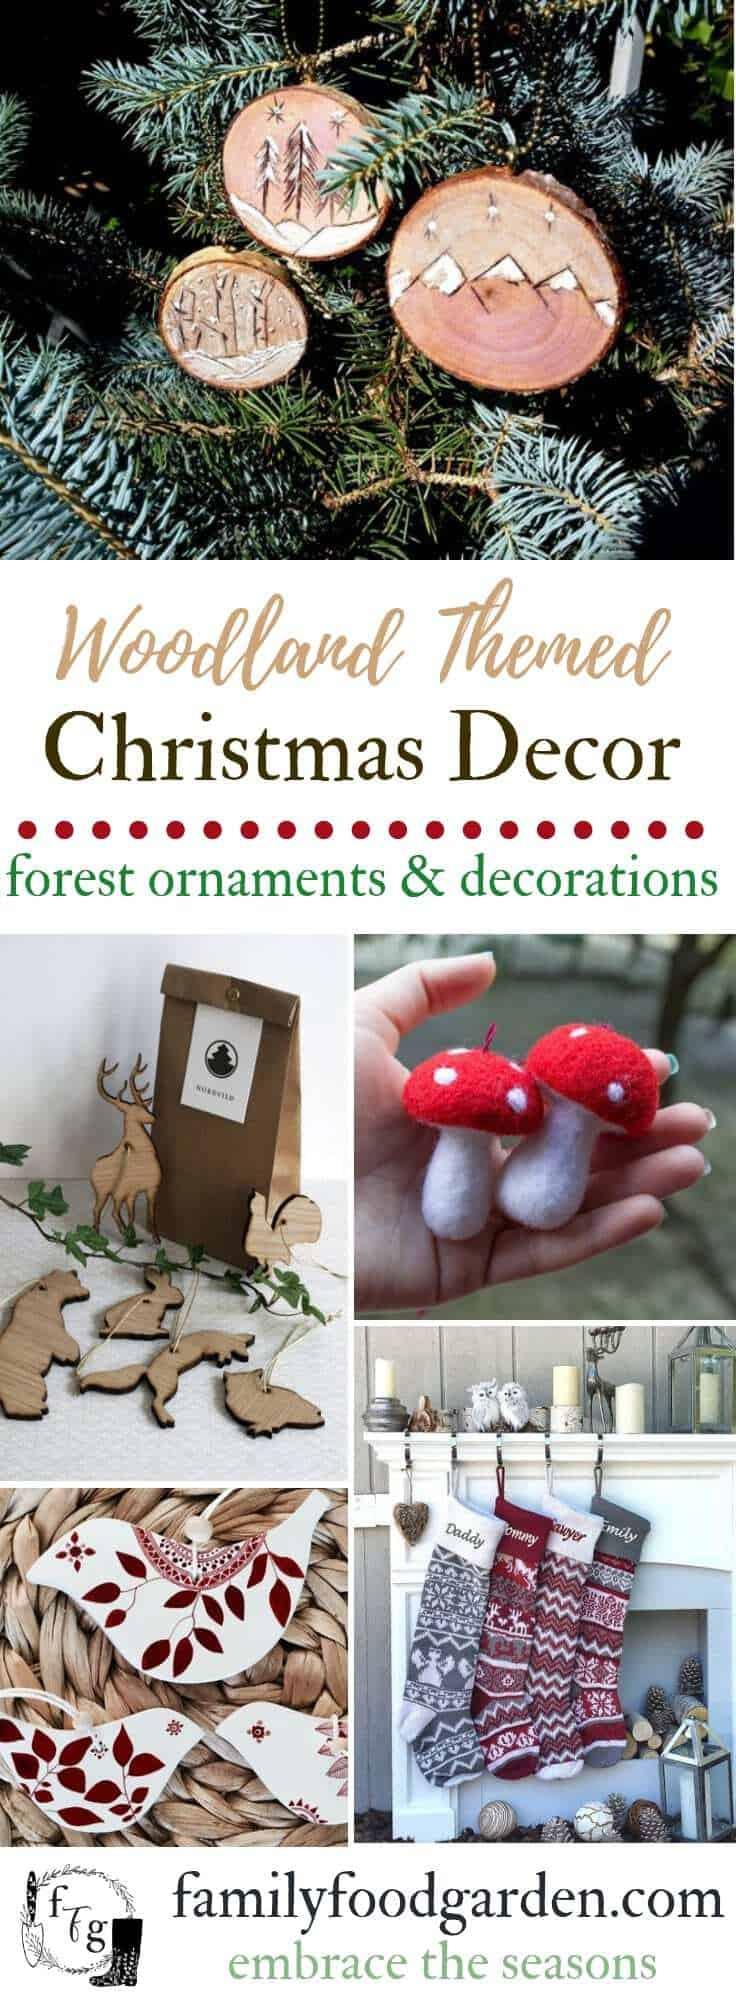 Nordic woodland Christmas ornaments #christmasdecor #christmasstockings #christmasornaments #treeornaments #christmastree #holiday #holidaydecor #nordic #woodlandchristmas